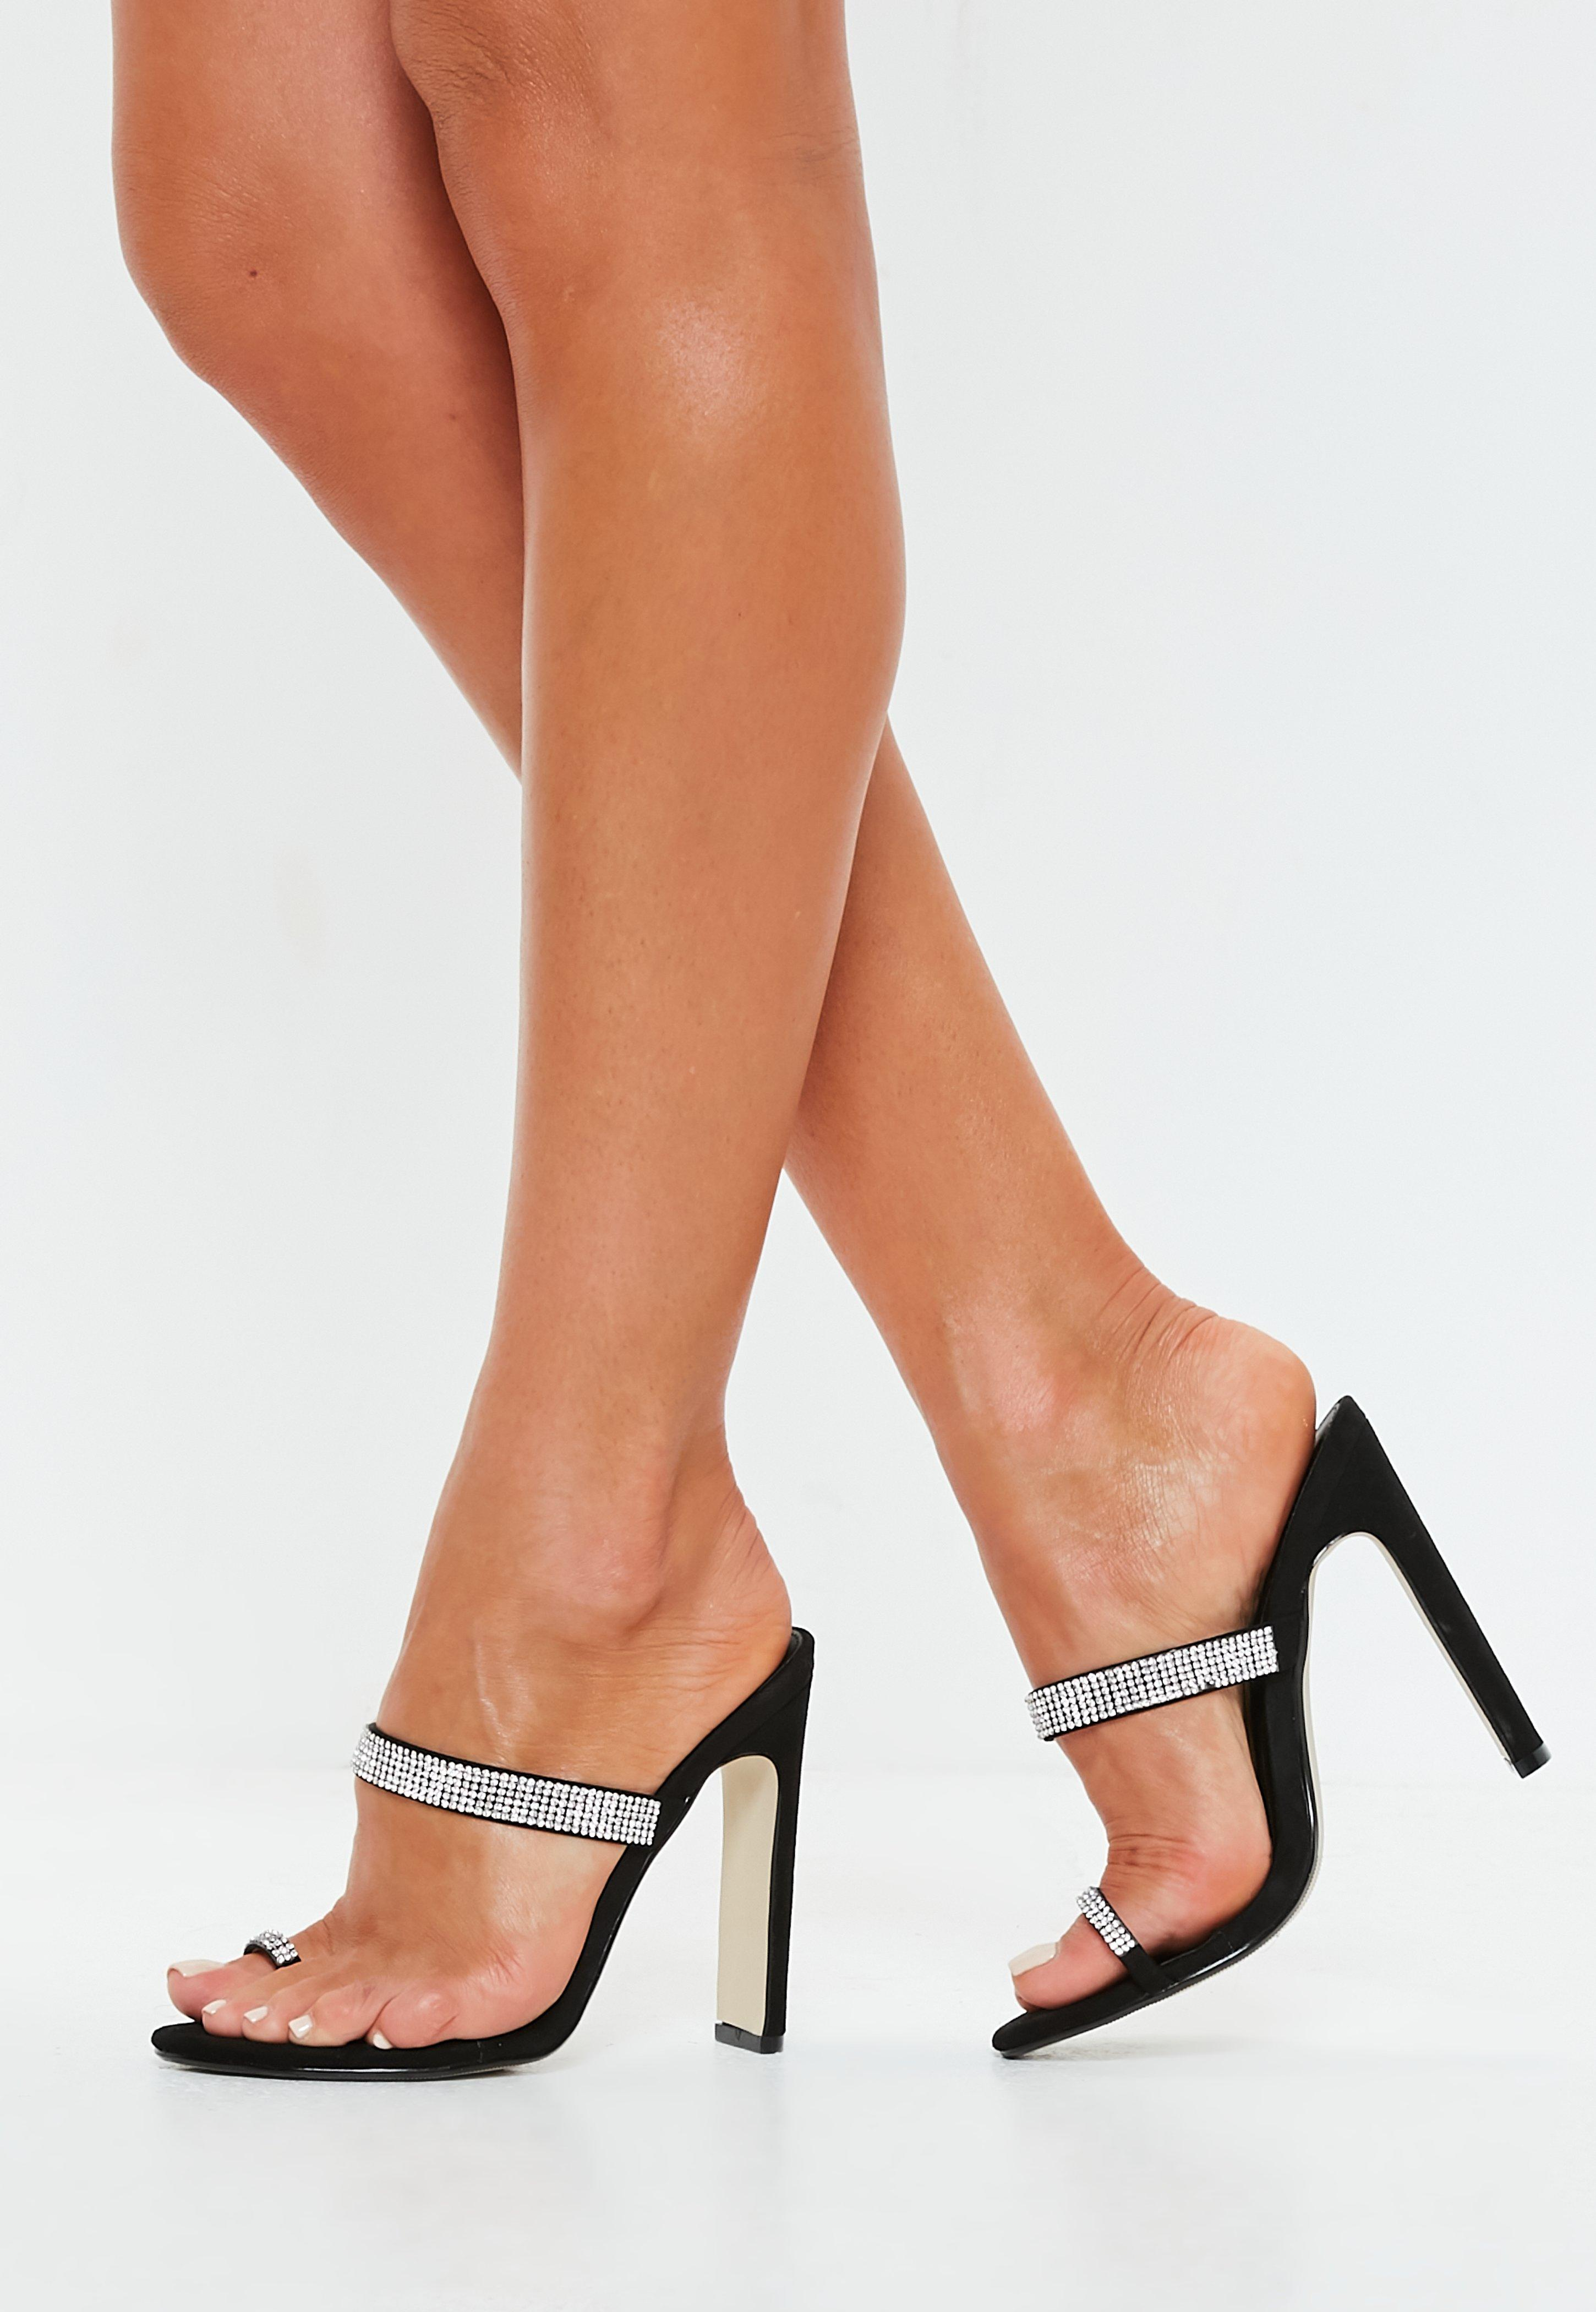 754a039efc703 Prom Shoes